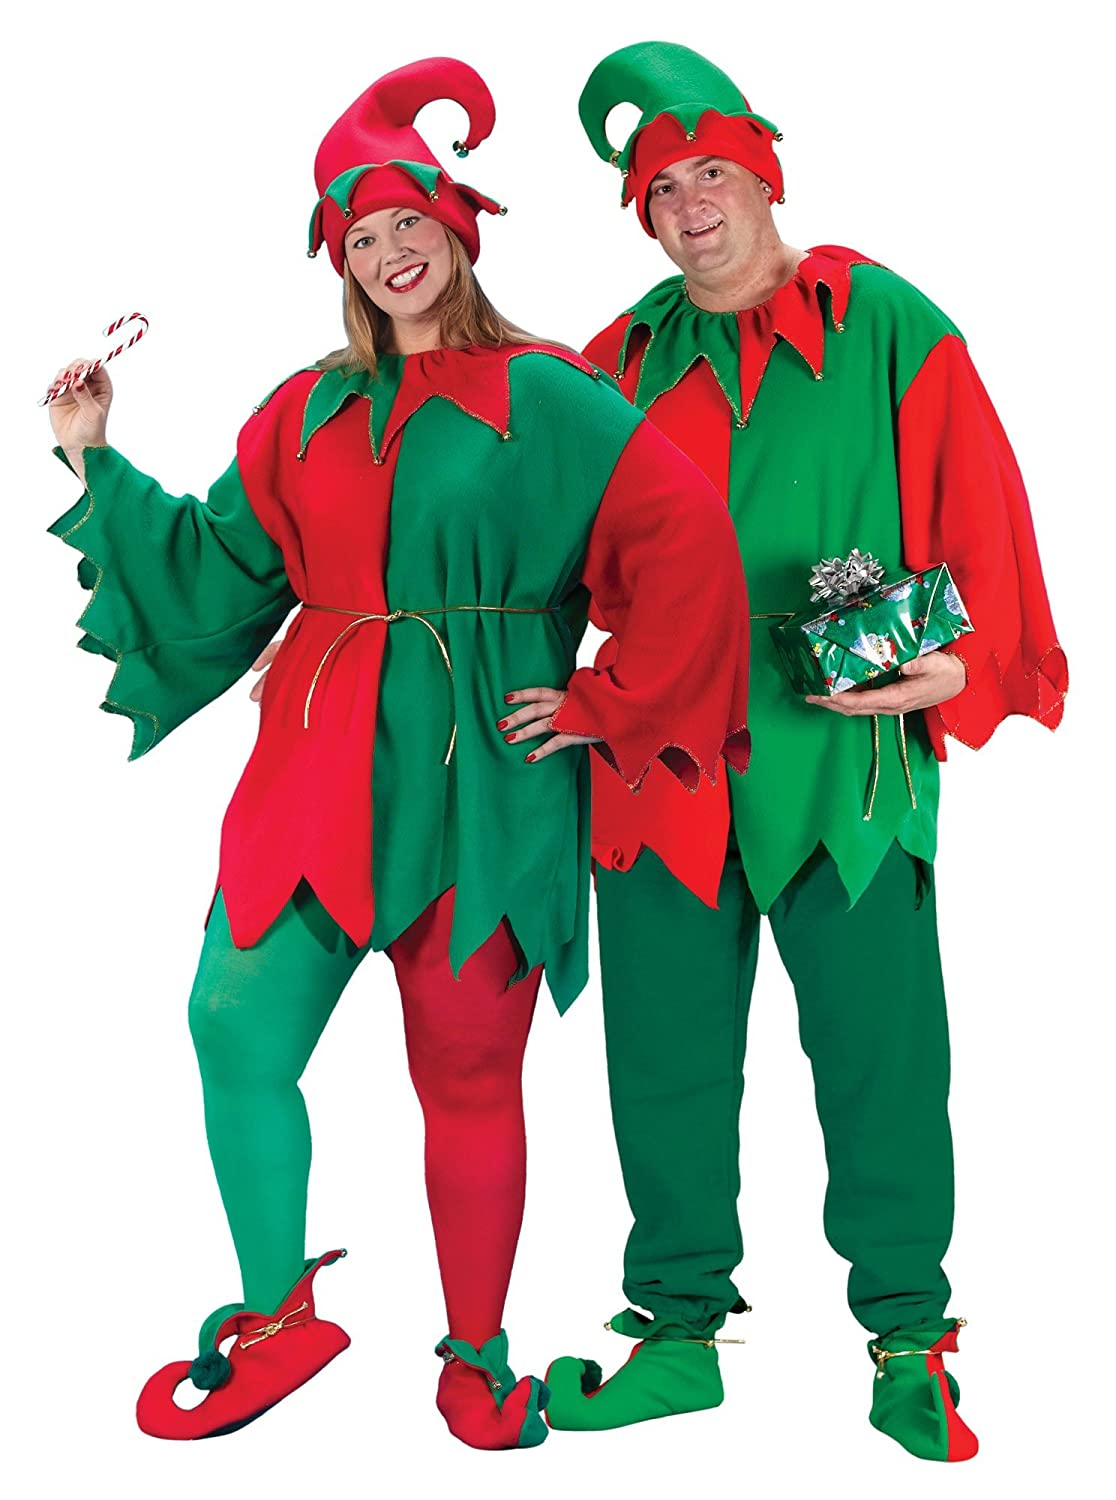 b48c8f86bc Amazon.com  Fun World Costumes Plus-Size Plus Size Elf Costume